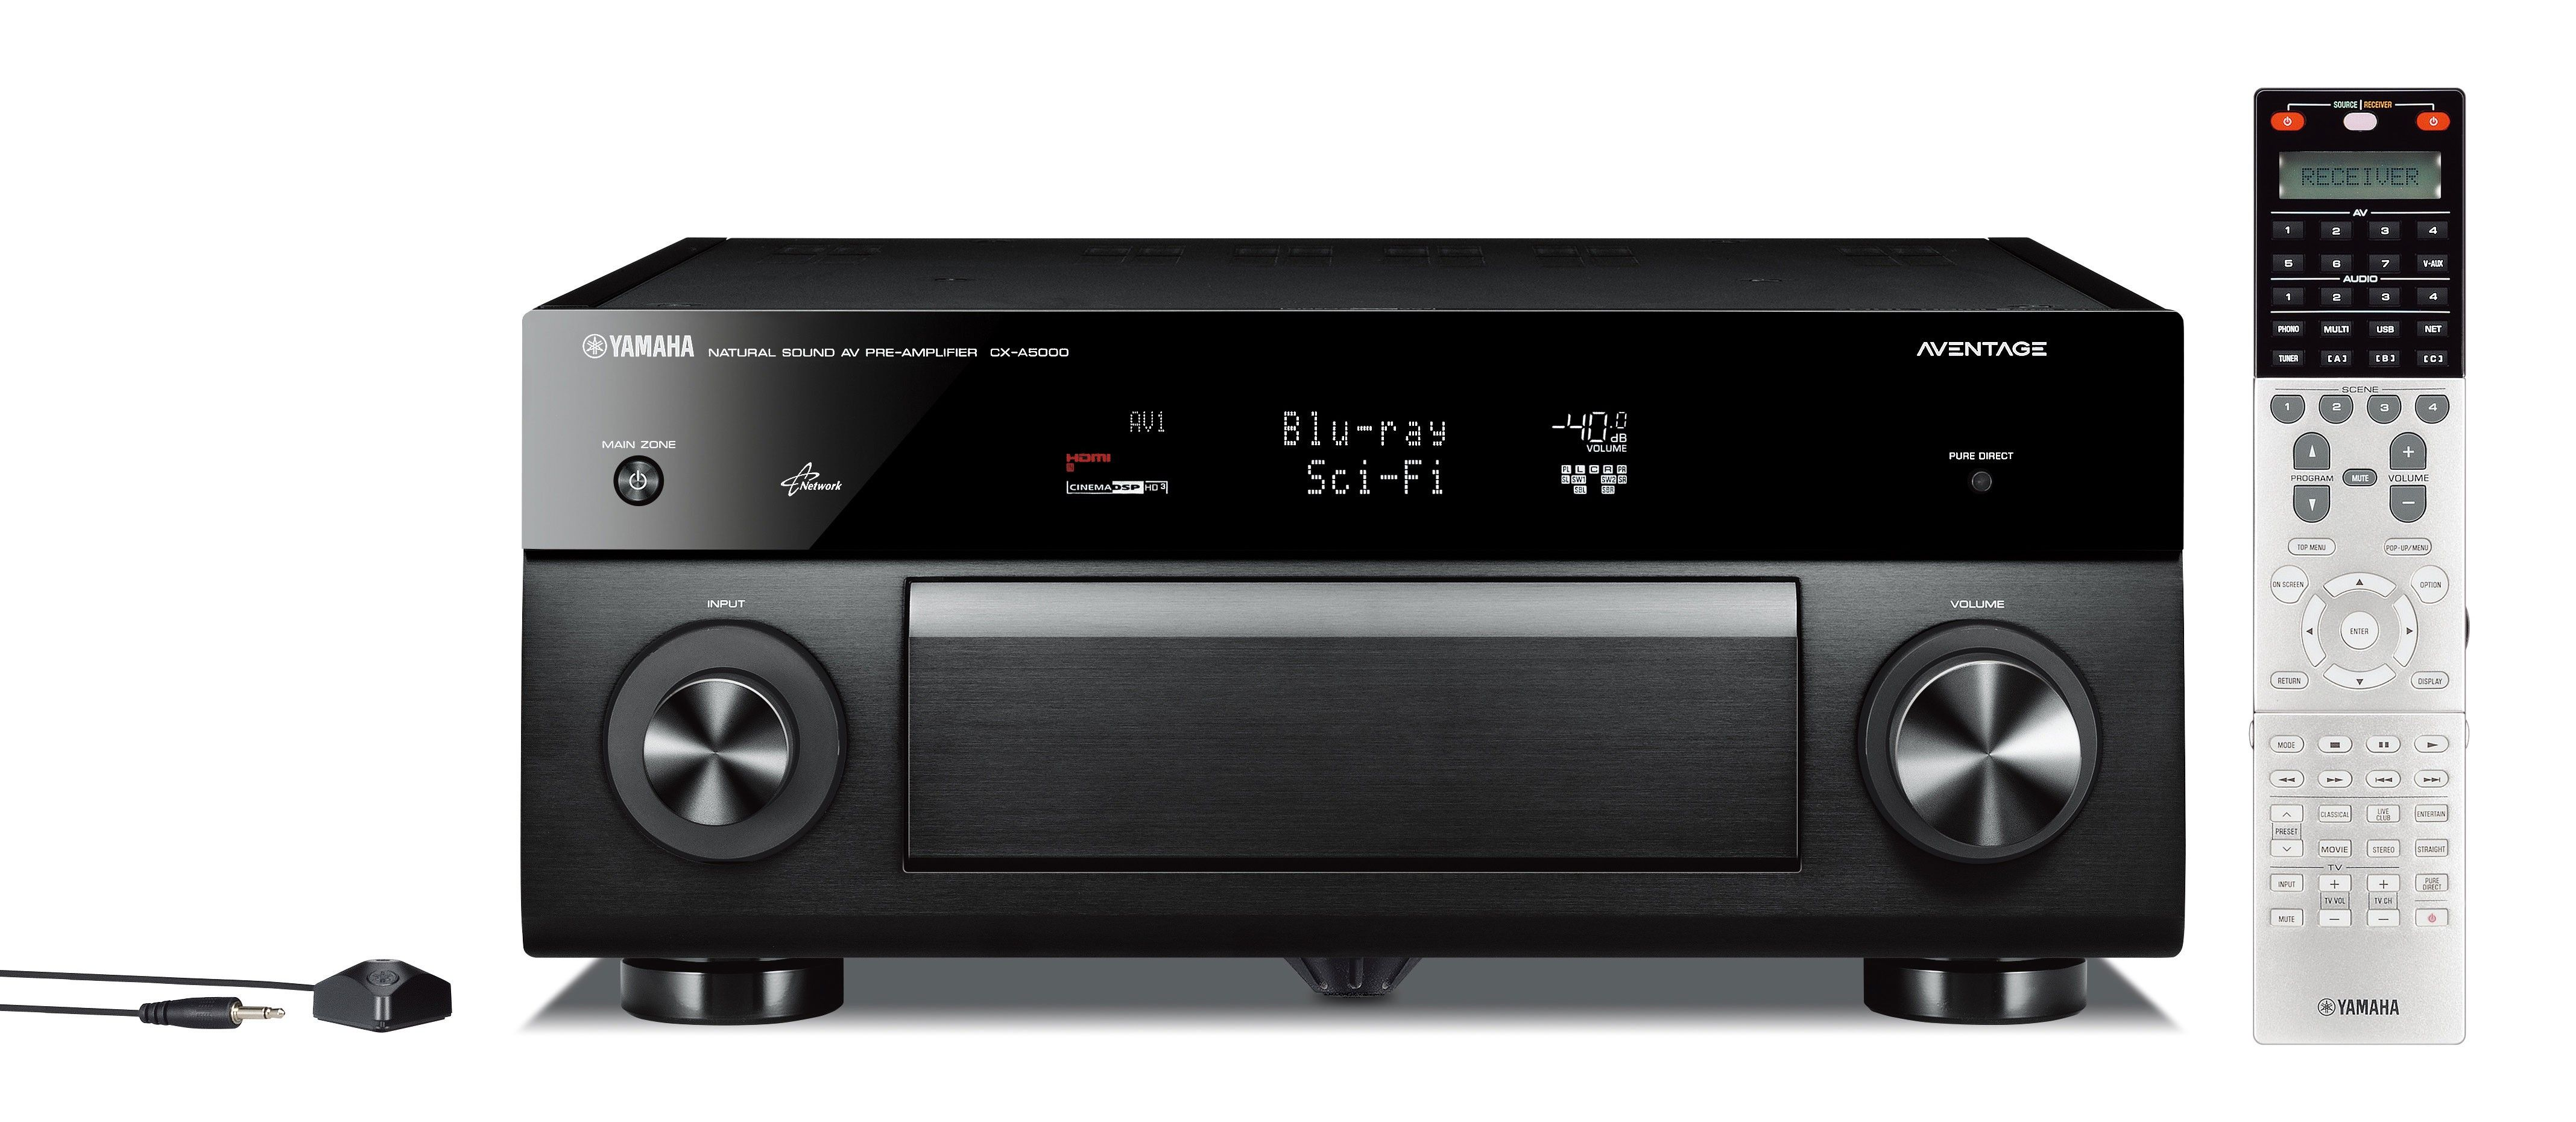 Yamaha Aventage Cx A5000 Av Preamp Features Xlr Balanced Connection Pre Wiring A Home Theater 11 Channel Out And 2 Input Ess Technology Es9016 Sabre32tm Ultra Dacs For